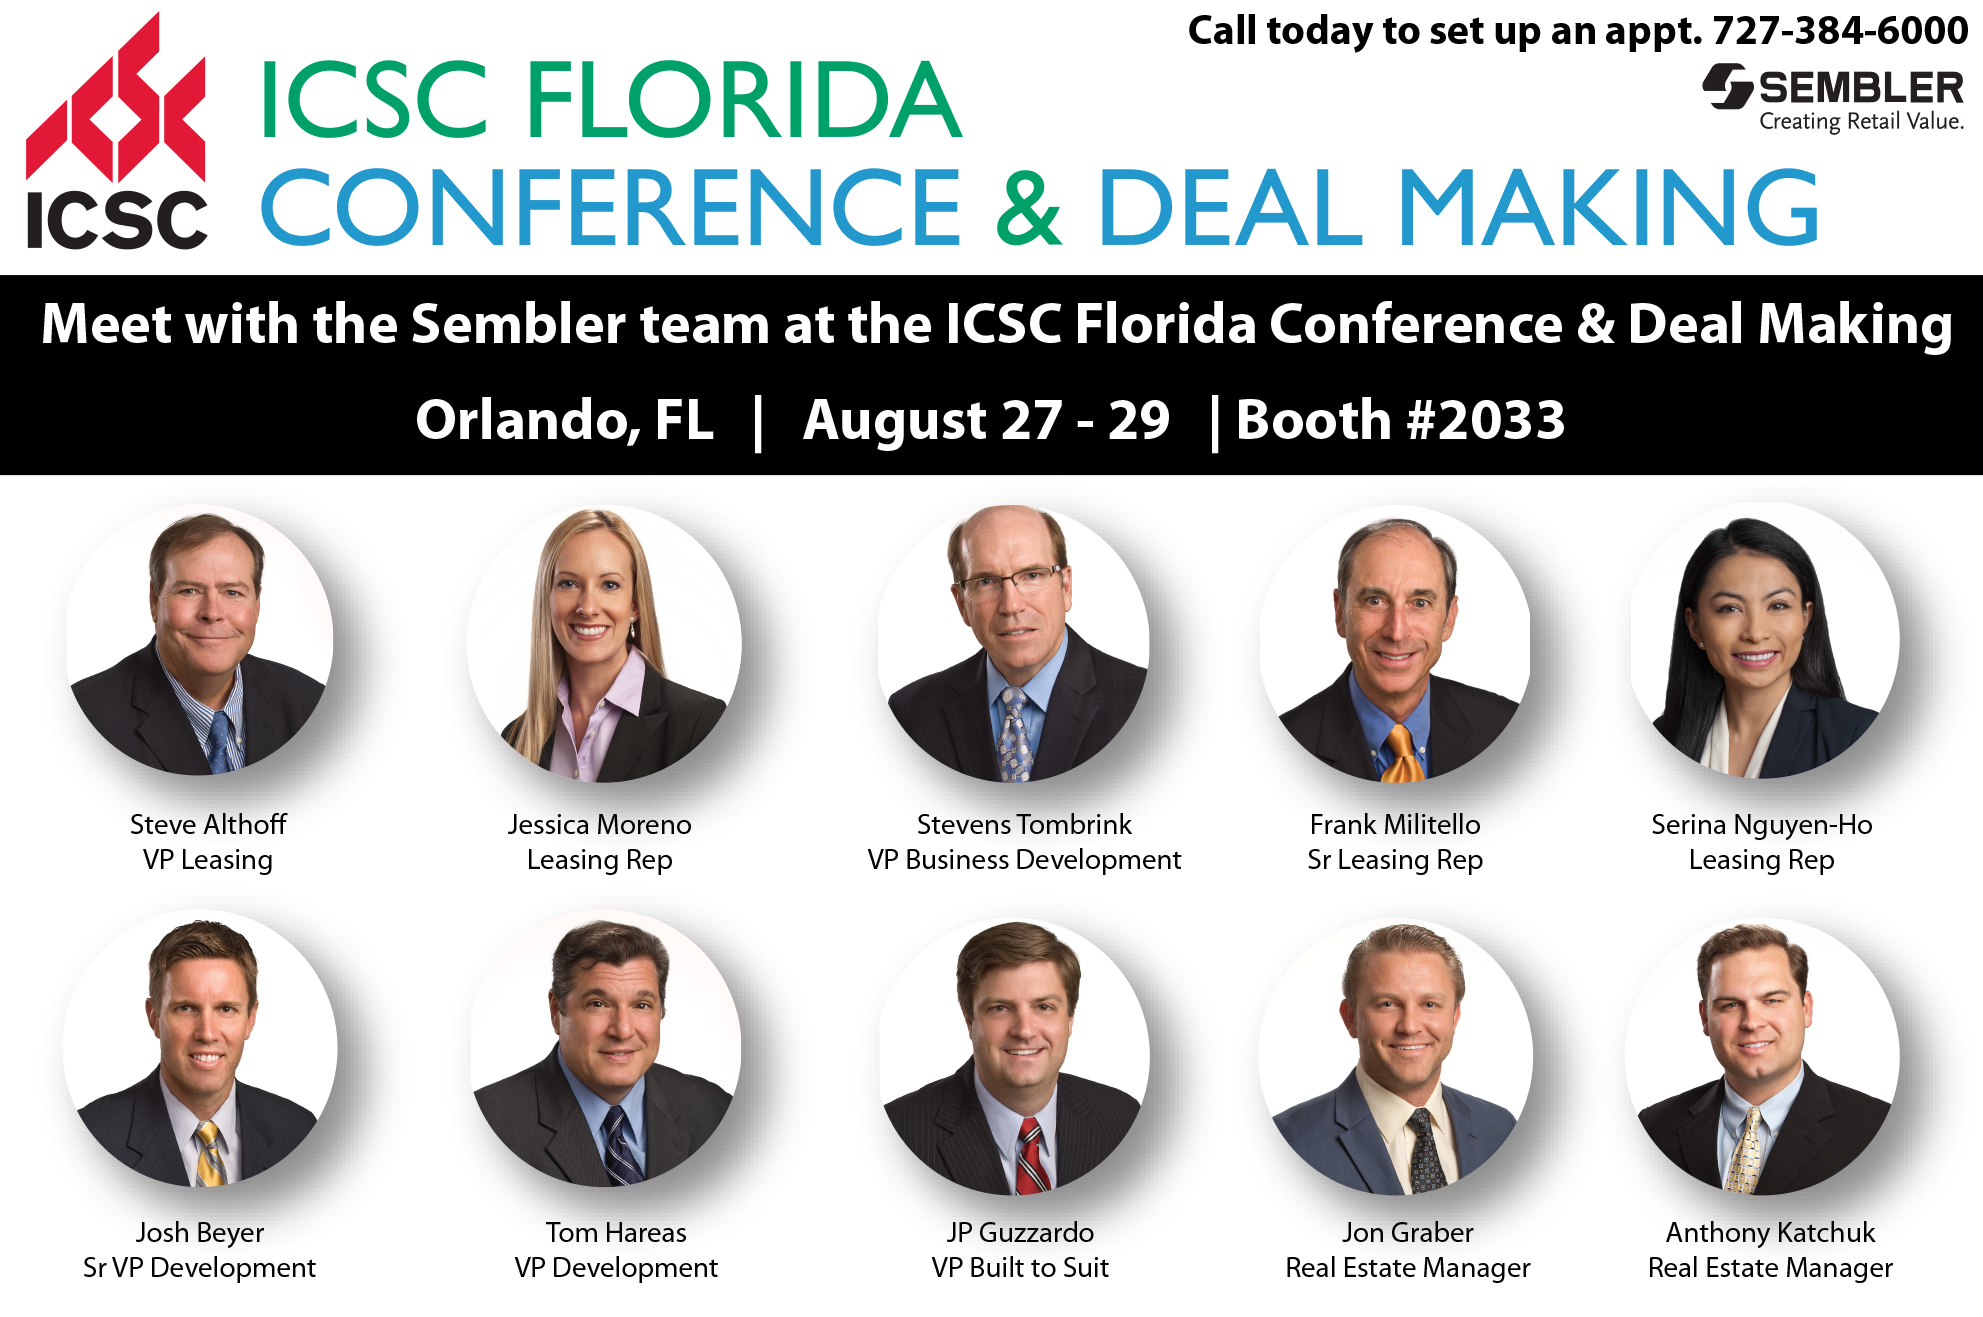 Sembler To Highlight New Developments, Acquisitions at ICSC Florida Conference